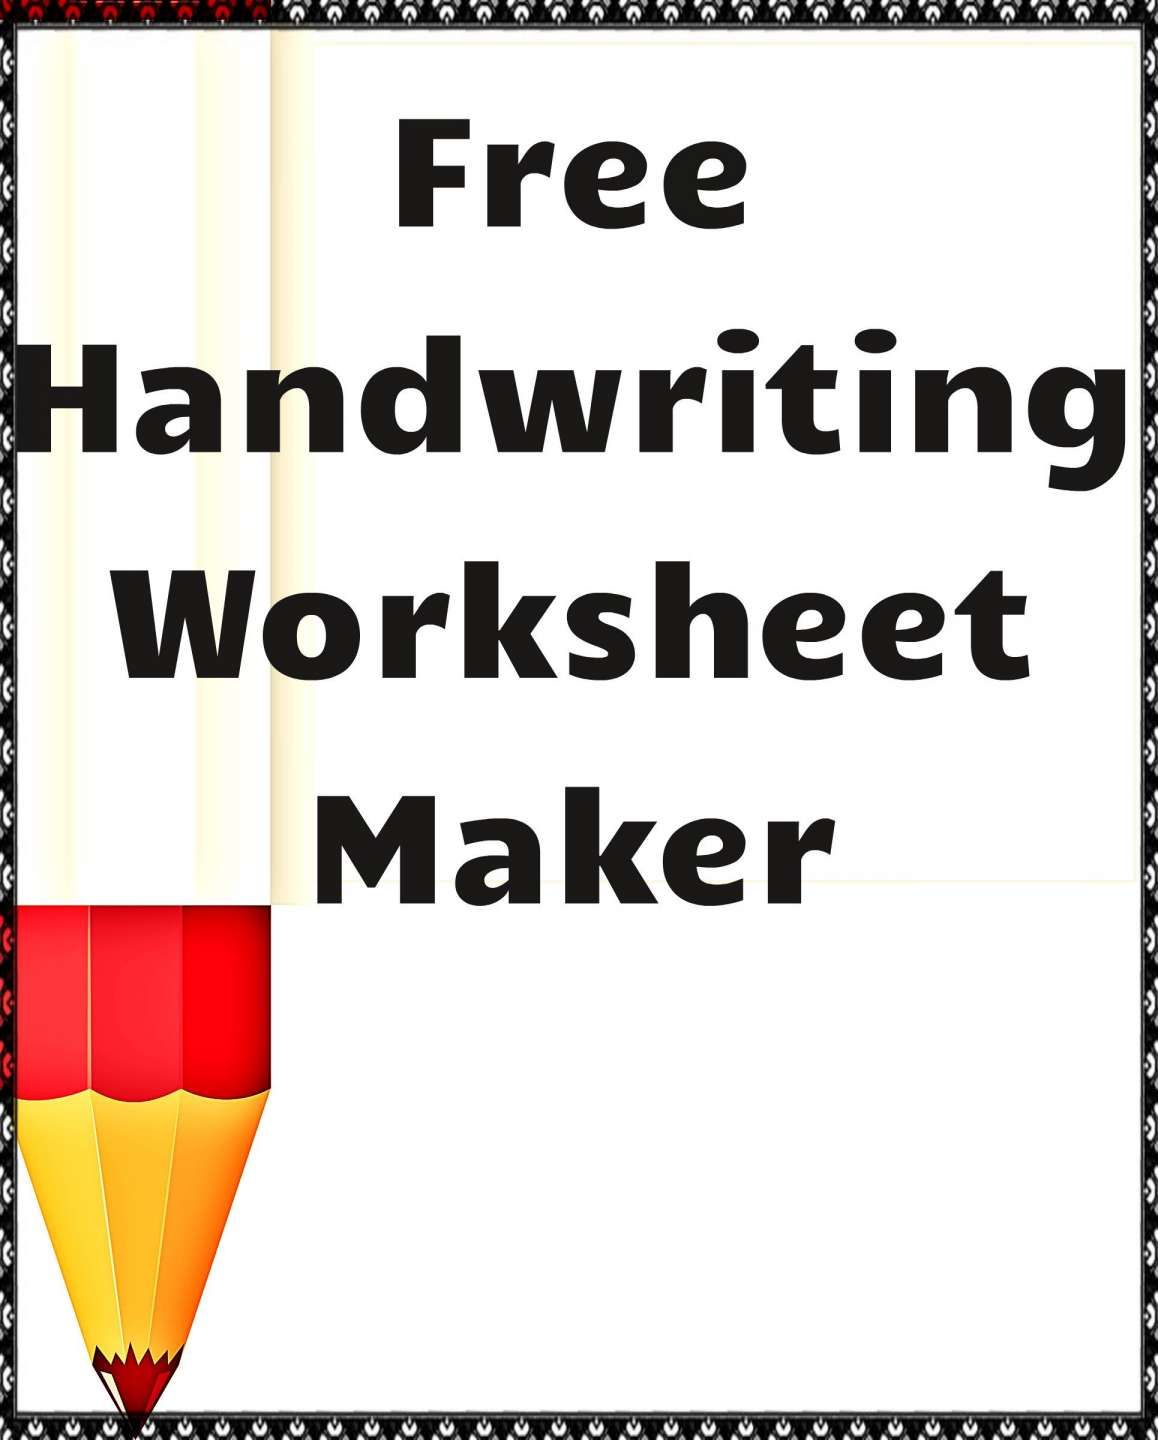 12 Kindergarten Writing Worksheet Maker